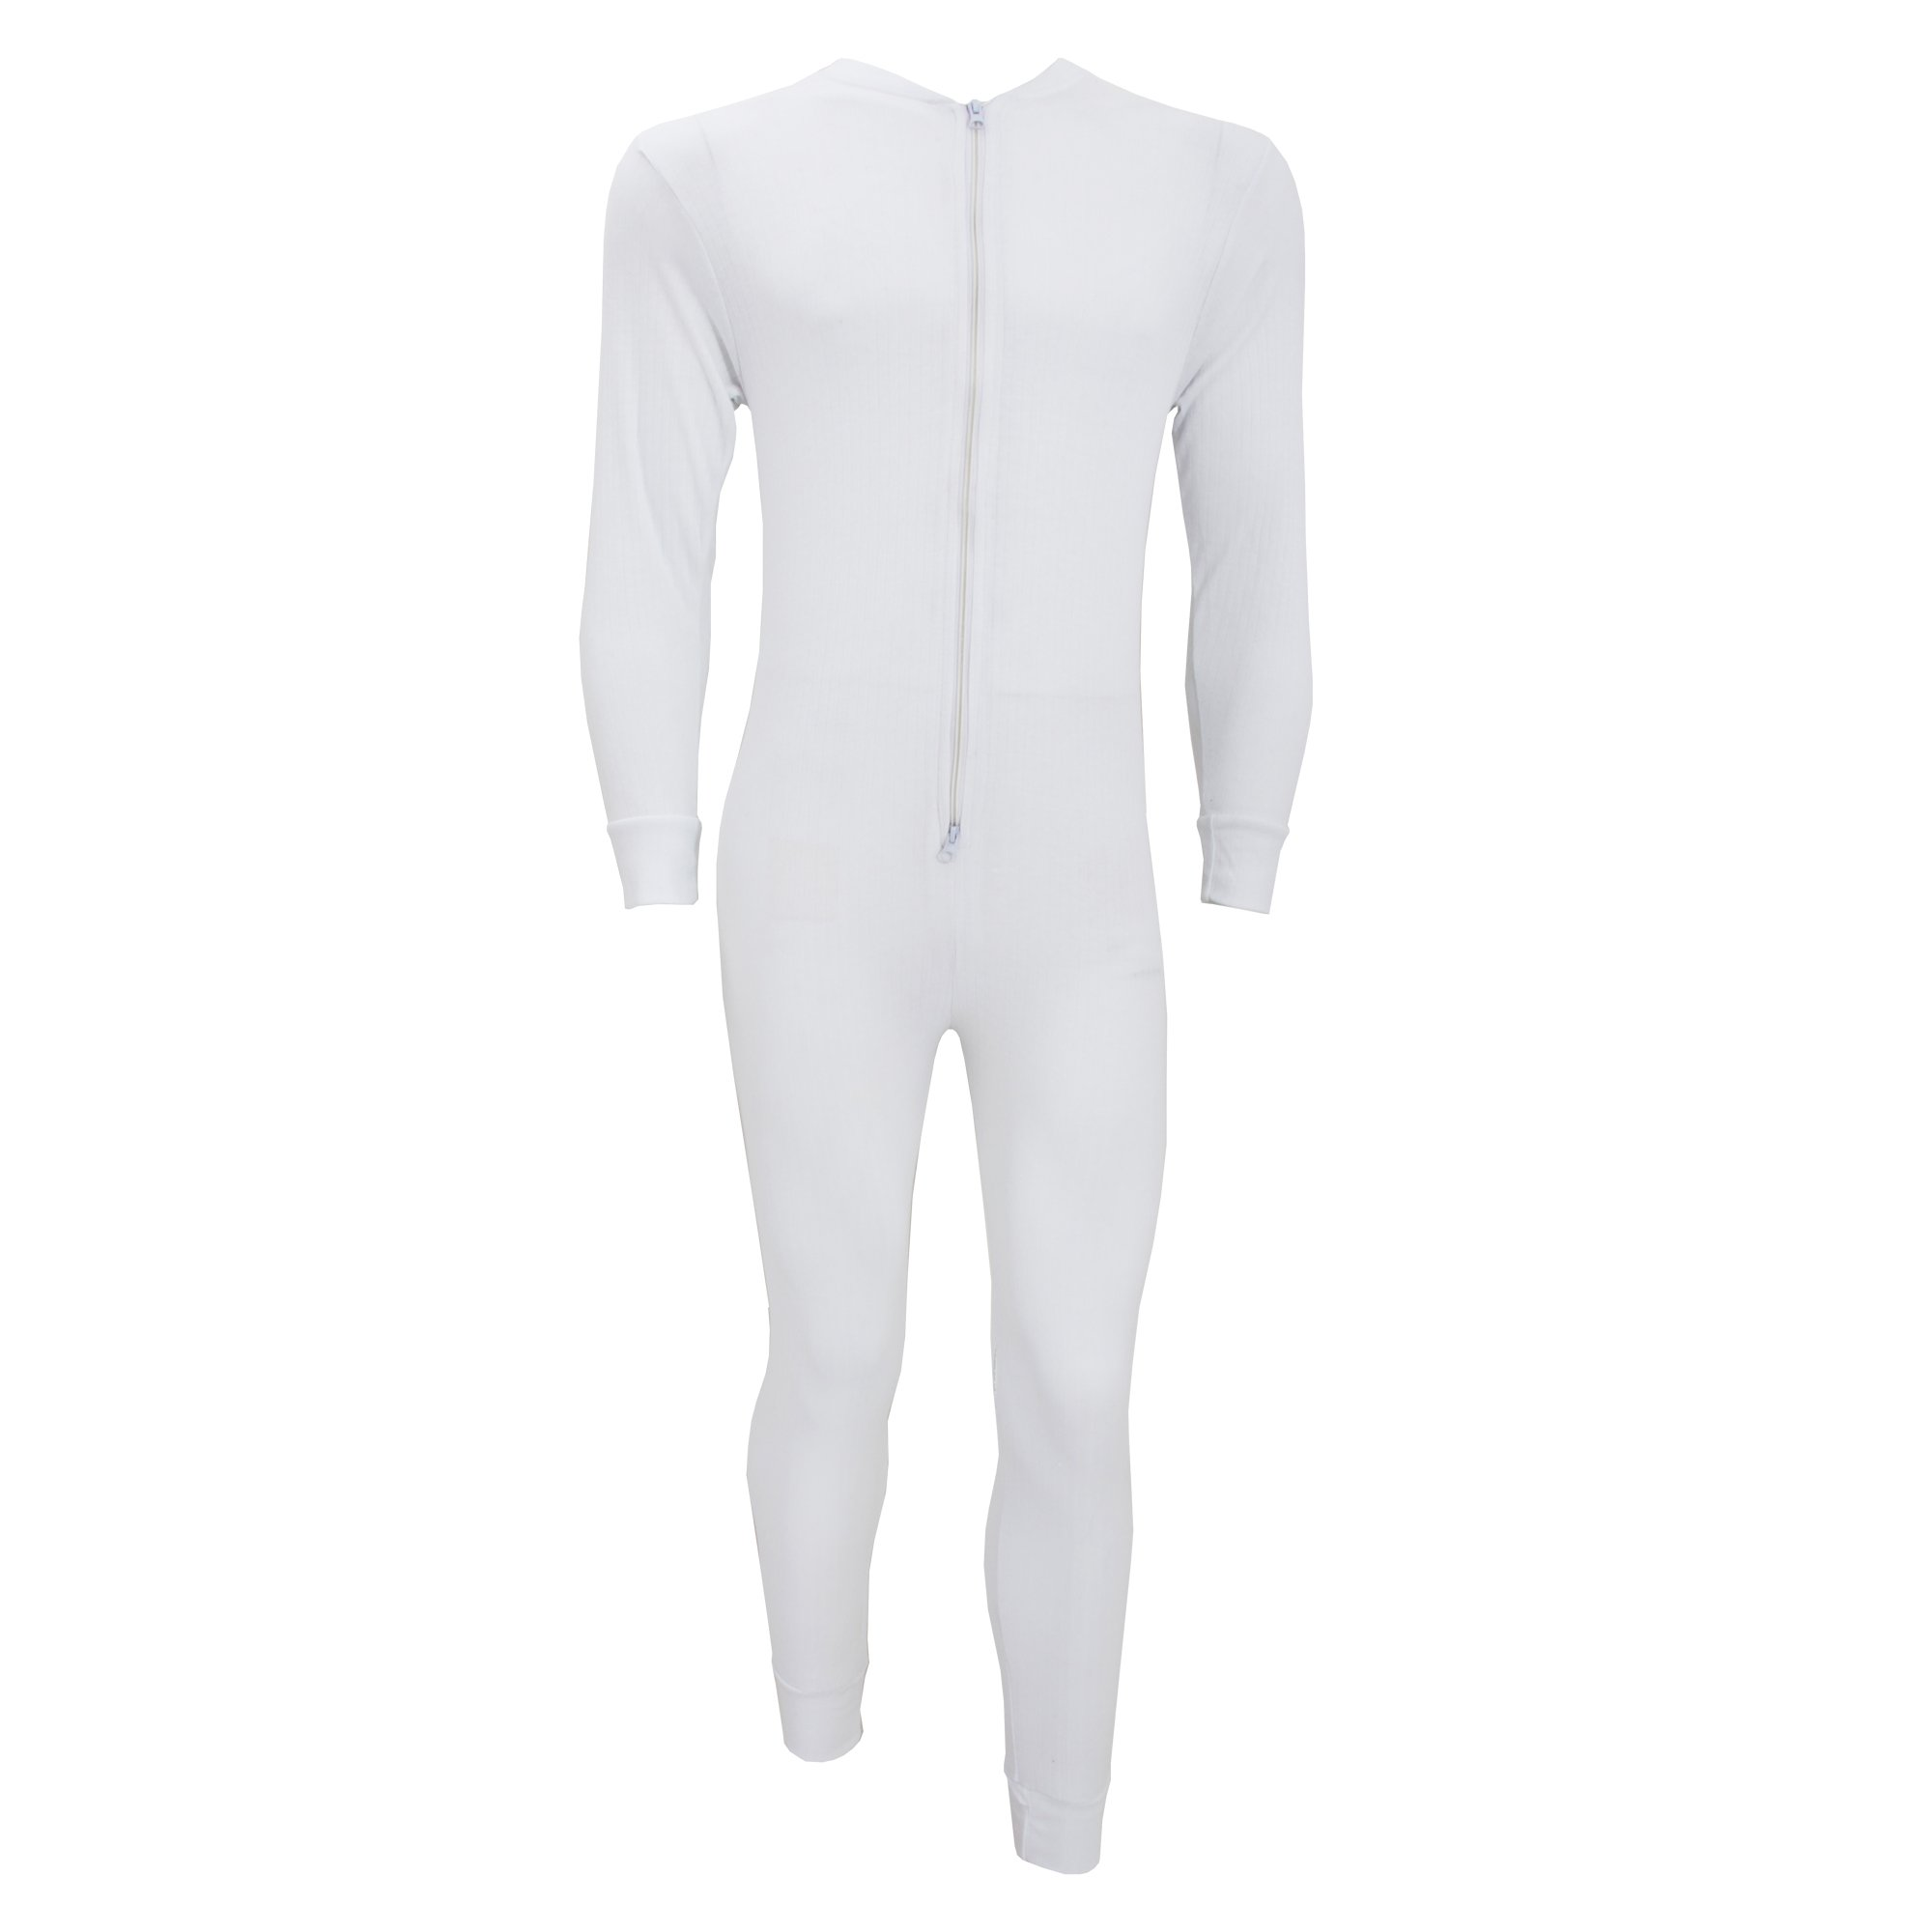 Floso Mens Thermal Underwear All In One Union Suit With Rear Flap (Standard Range) (Chest: 32-34 inch (Small)) (White)